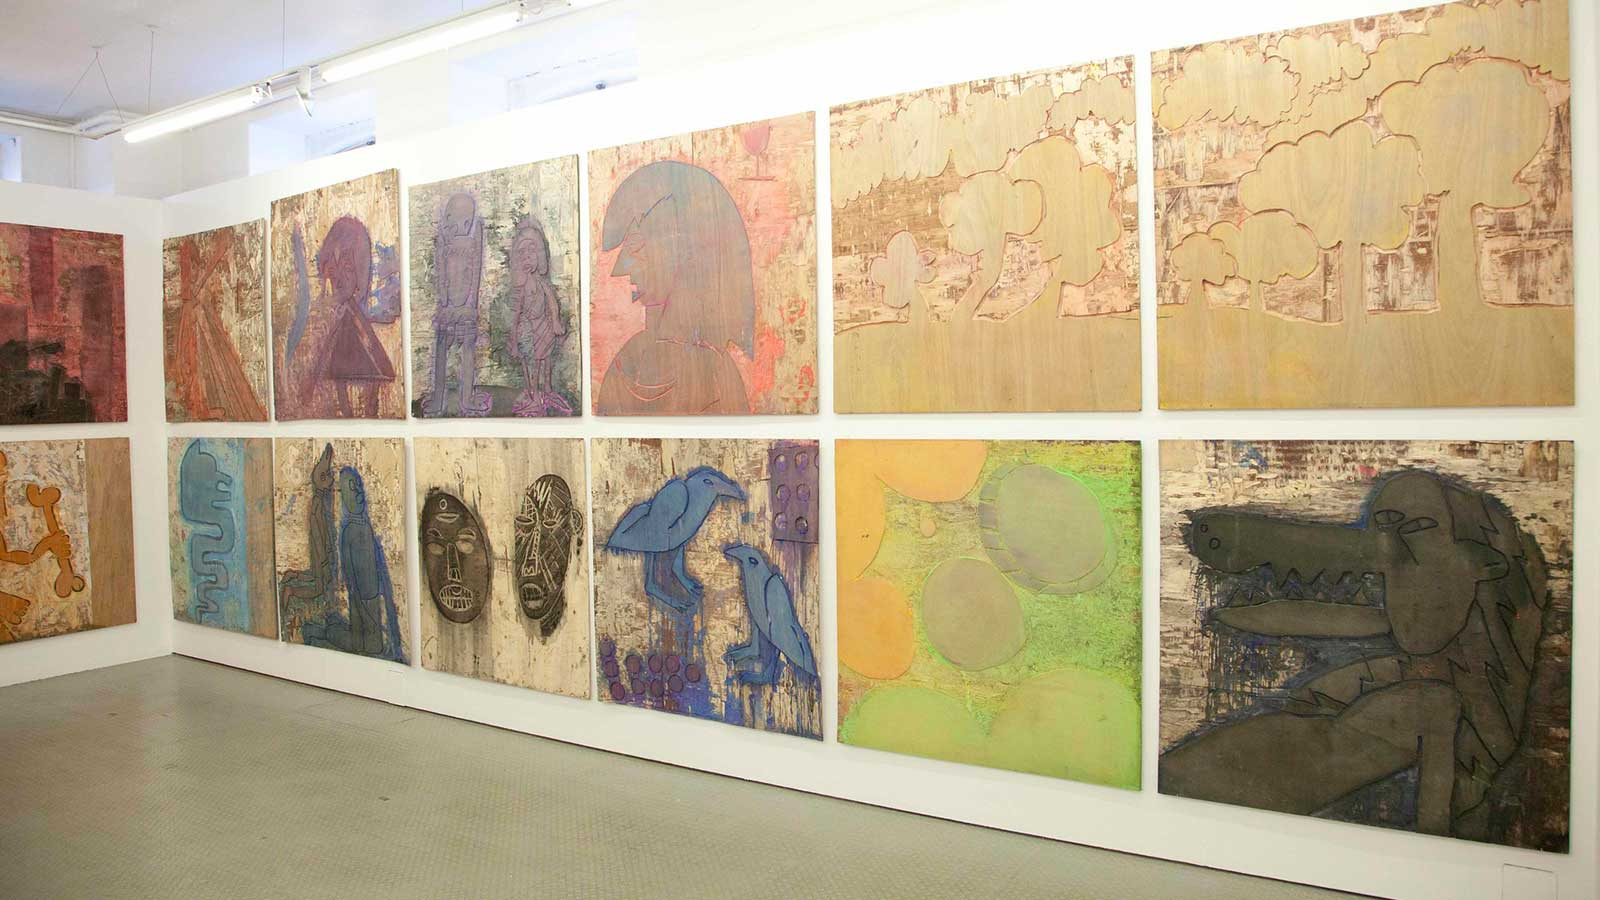 2 rows of paintings and etchings from Cedar Lewisohn's exhibition.